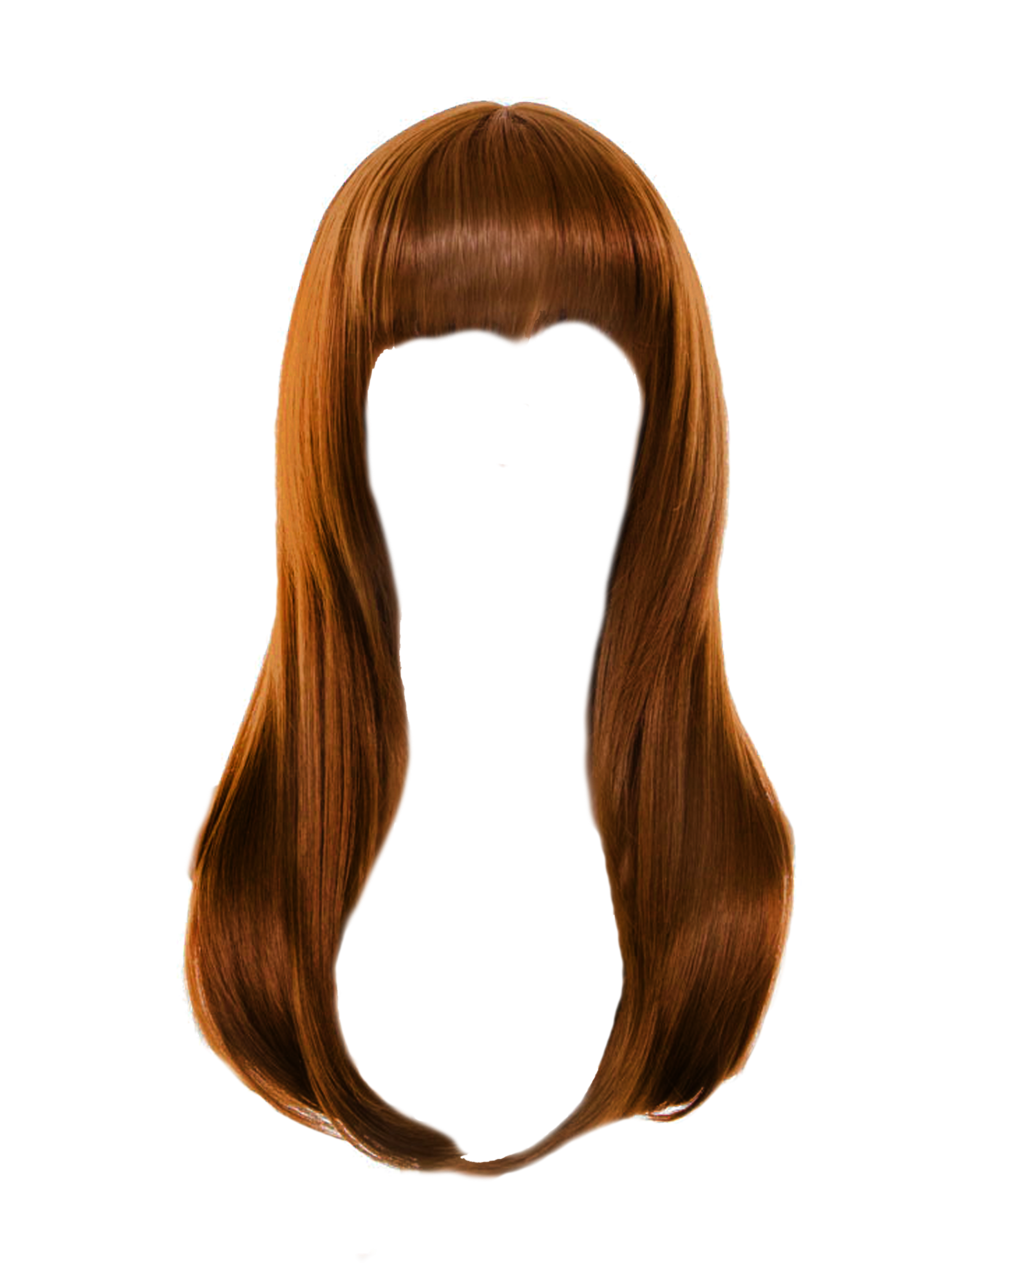 Wig transparent png. Hair icon web icons